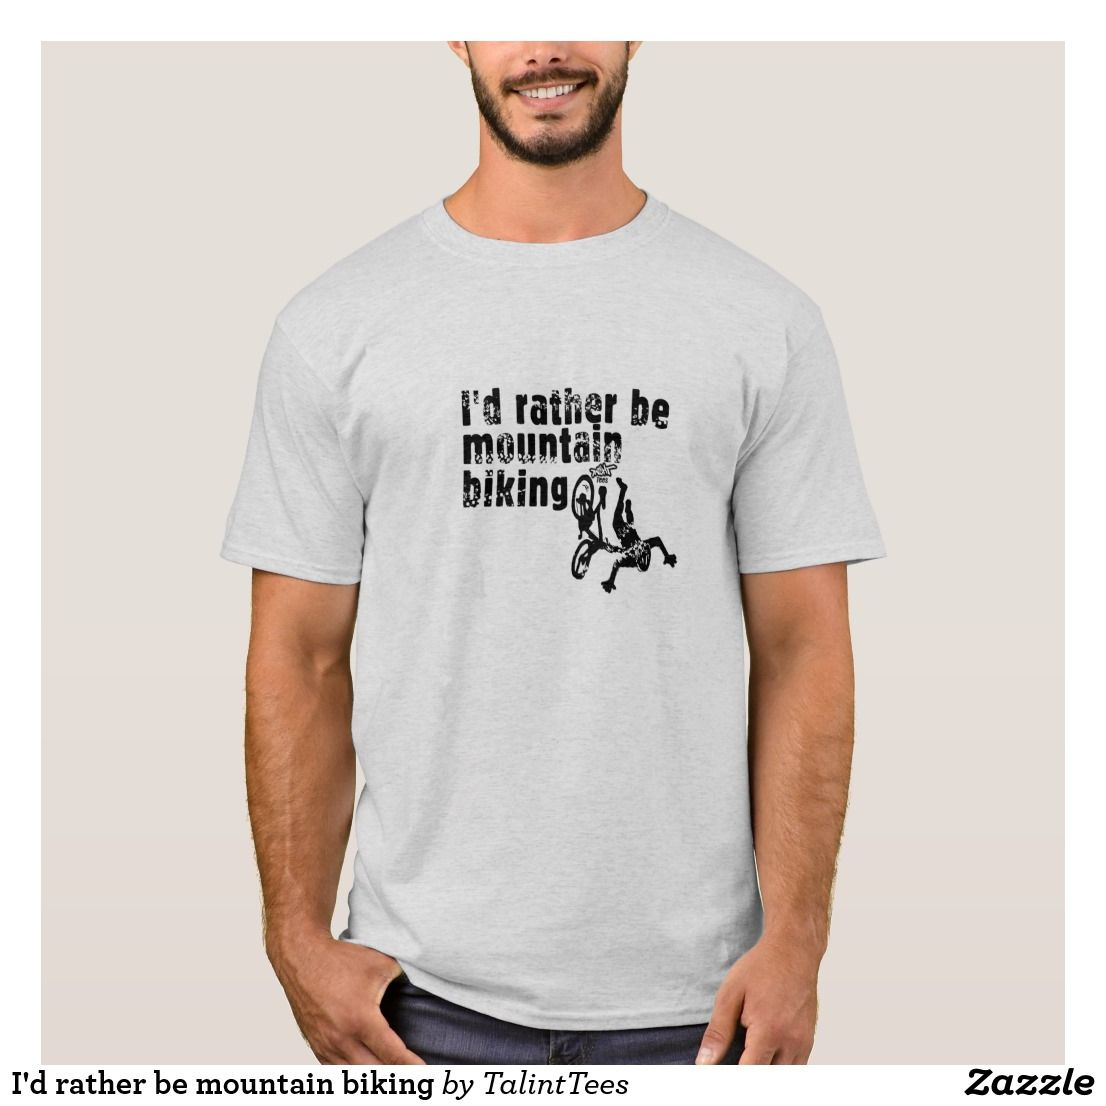 6668bfdf3 I'd rather be mountain biking T-Shirt | Zazzle.com in 2019 | Animal ...